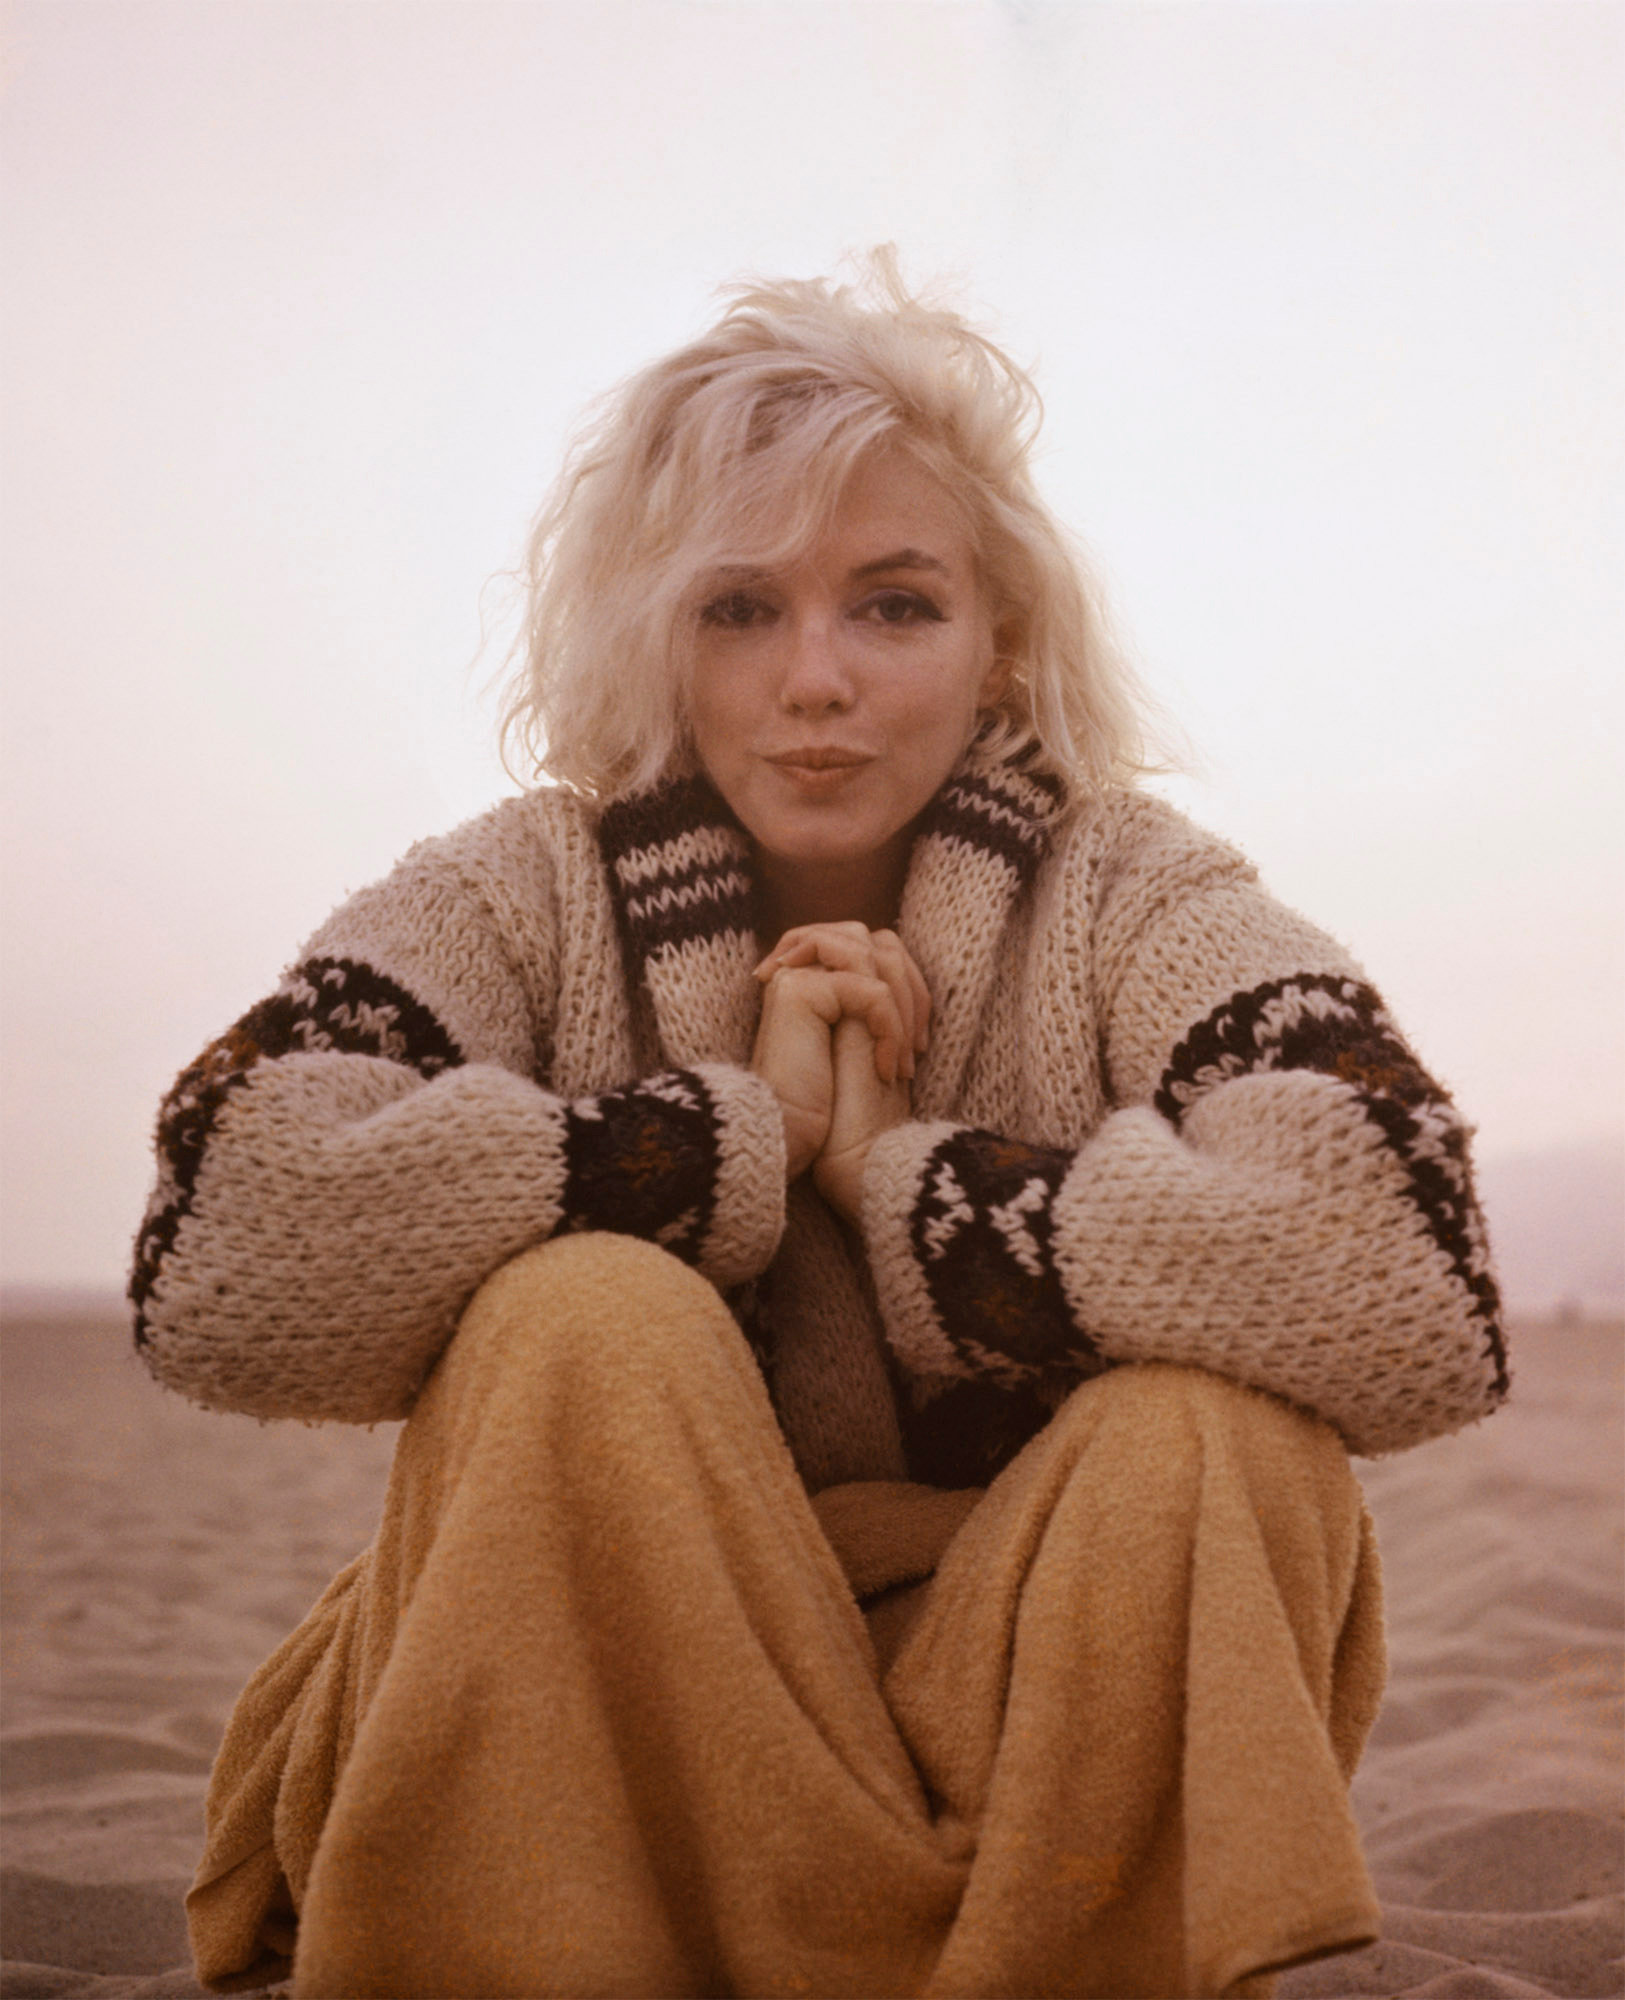 George Barris, Photographer Who Captured the Last Images of Marilyn Monroe, Dies at 94 - The New York Times